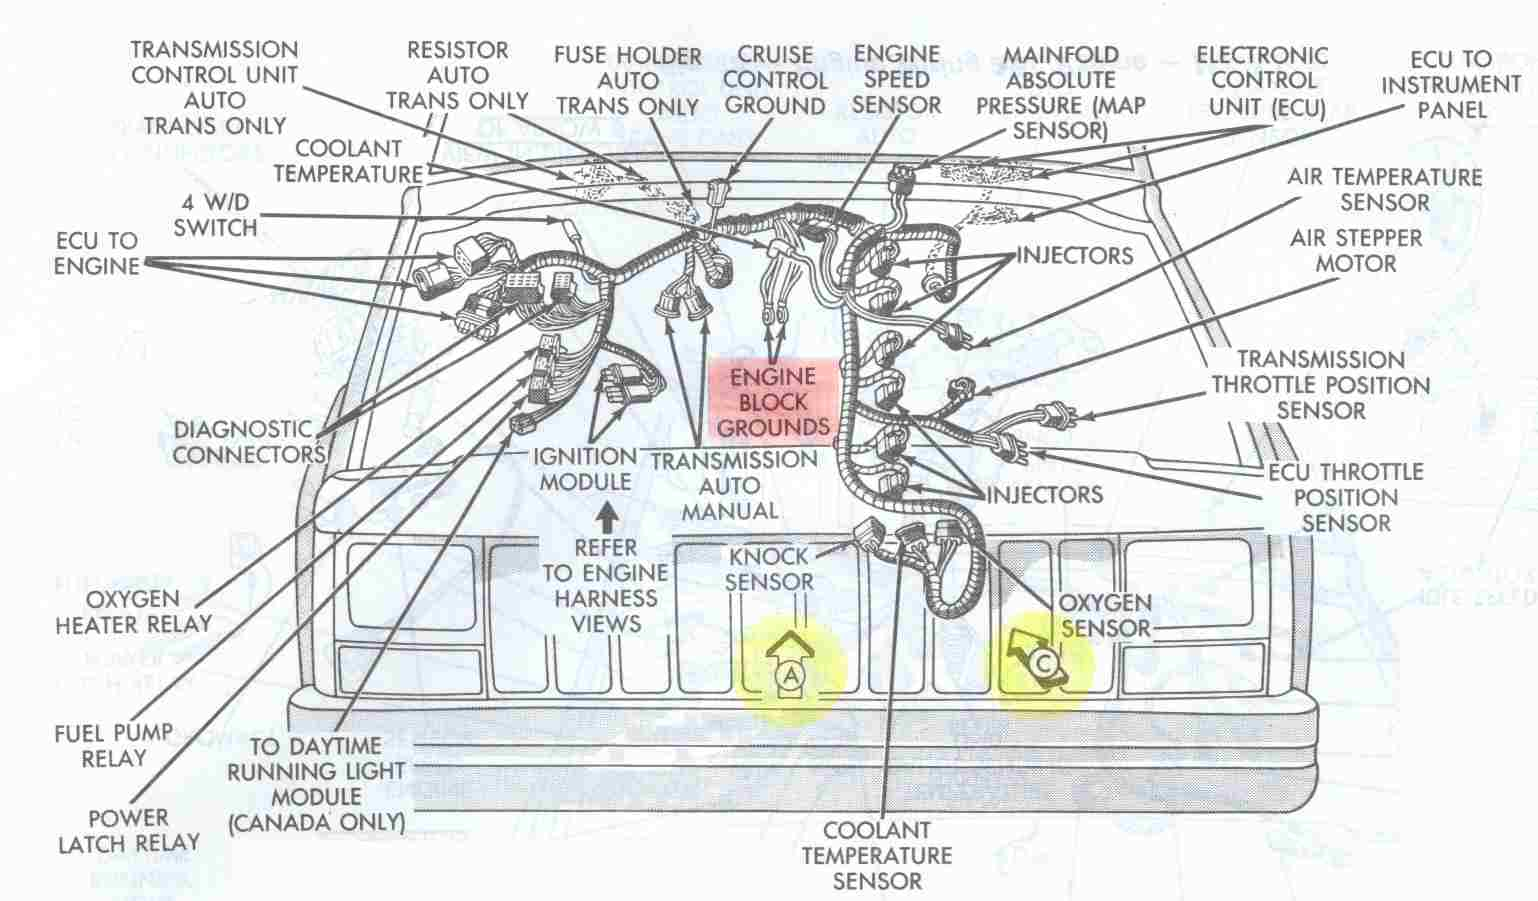 Electrical_Engine_Ground_Points_Overview jeep cherokee electrical diagnosing erratic behavior of engine 2007 Jeep Wrangler Wiring Diagram at pacquiaovsvargaslive.co